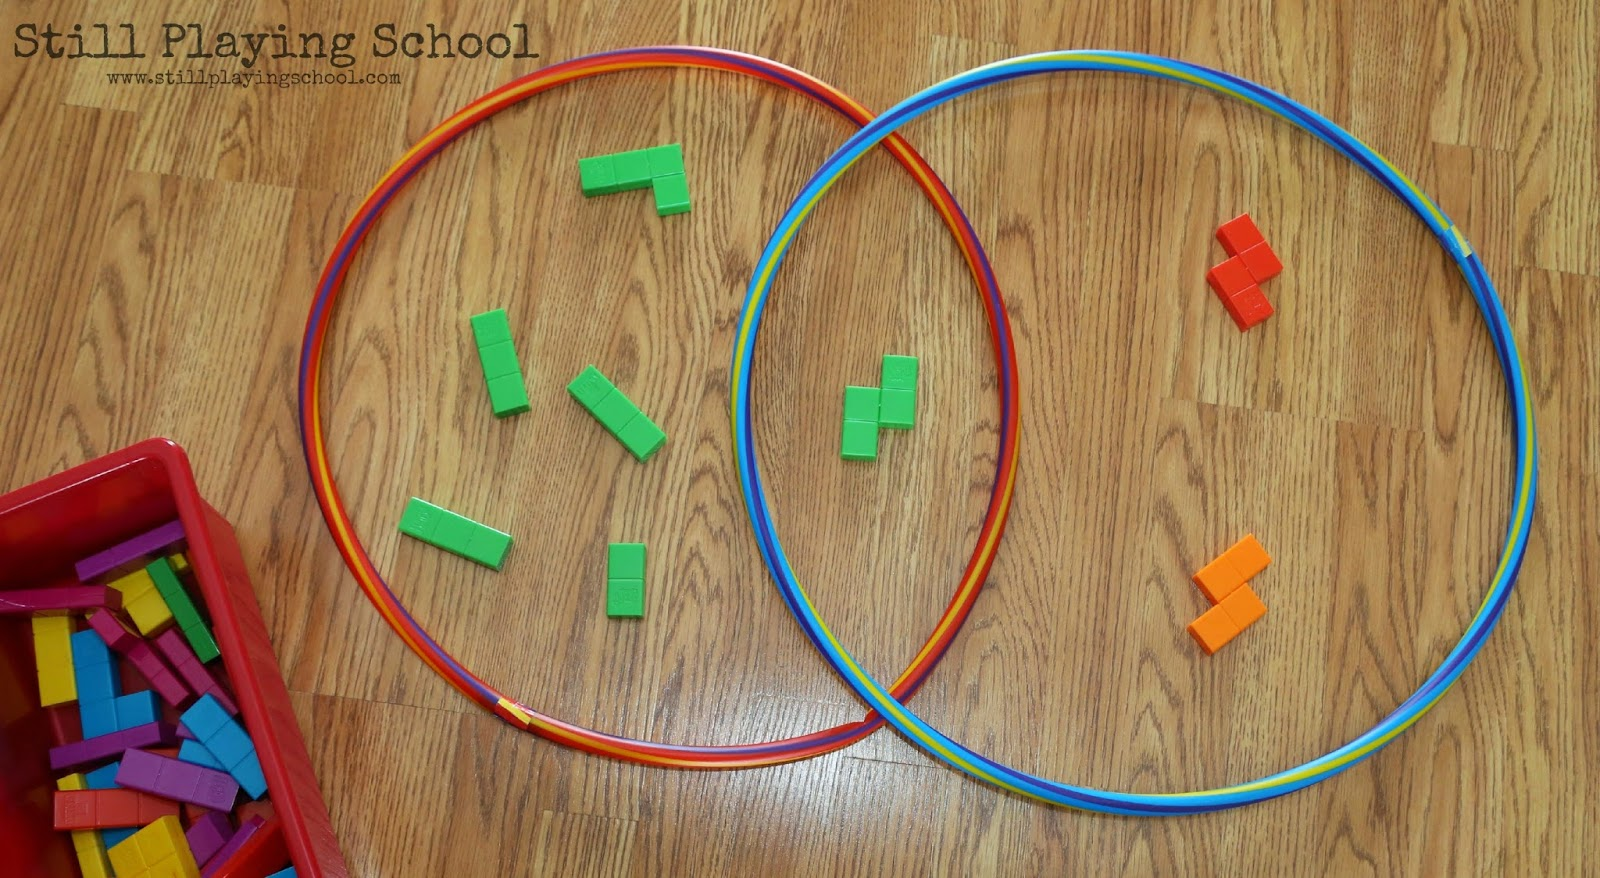 Hula hoop venn diagram sorting still playing school ccuart Images